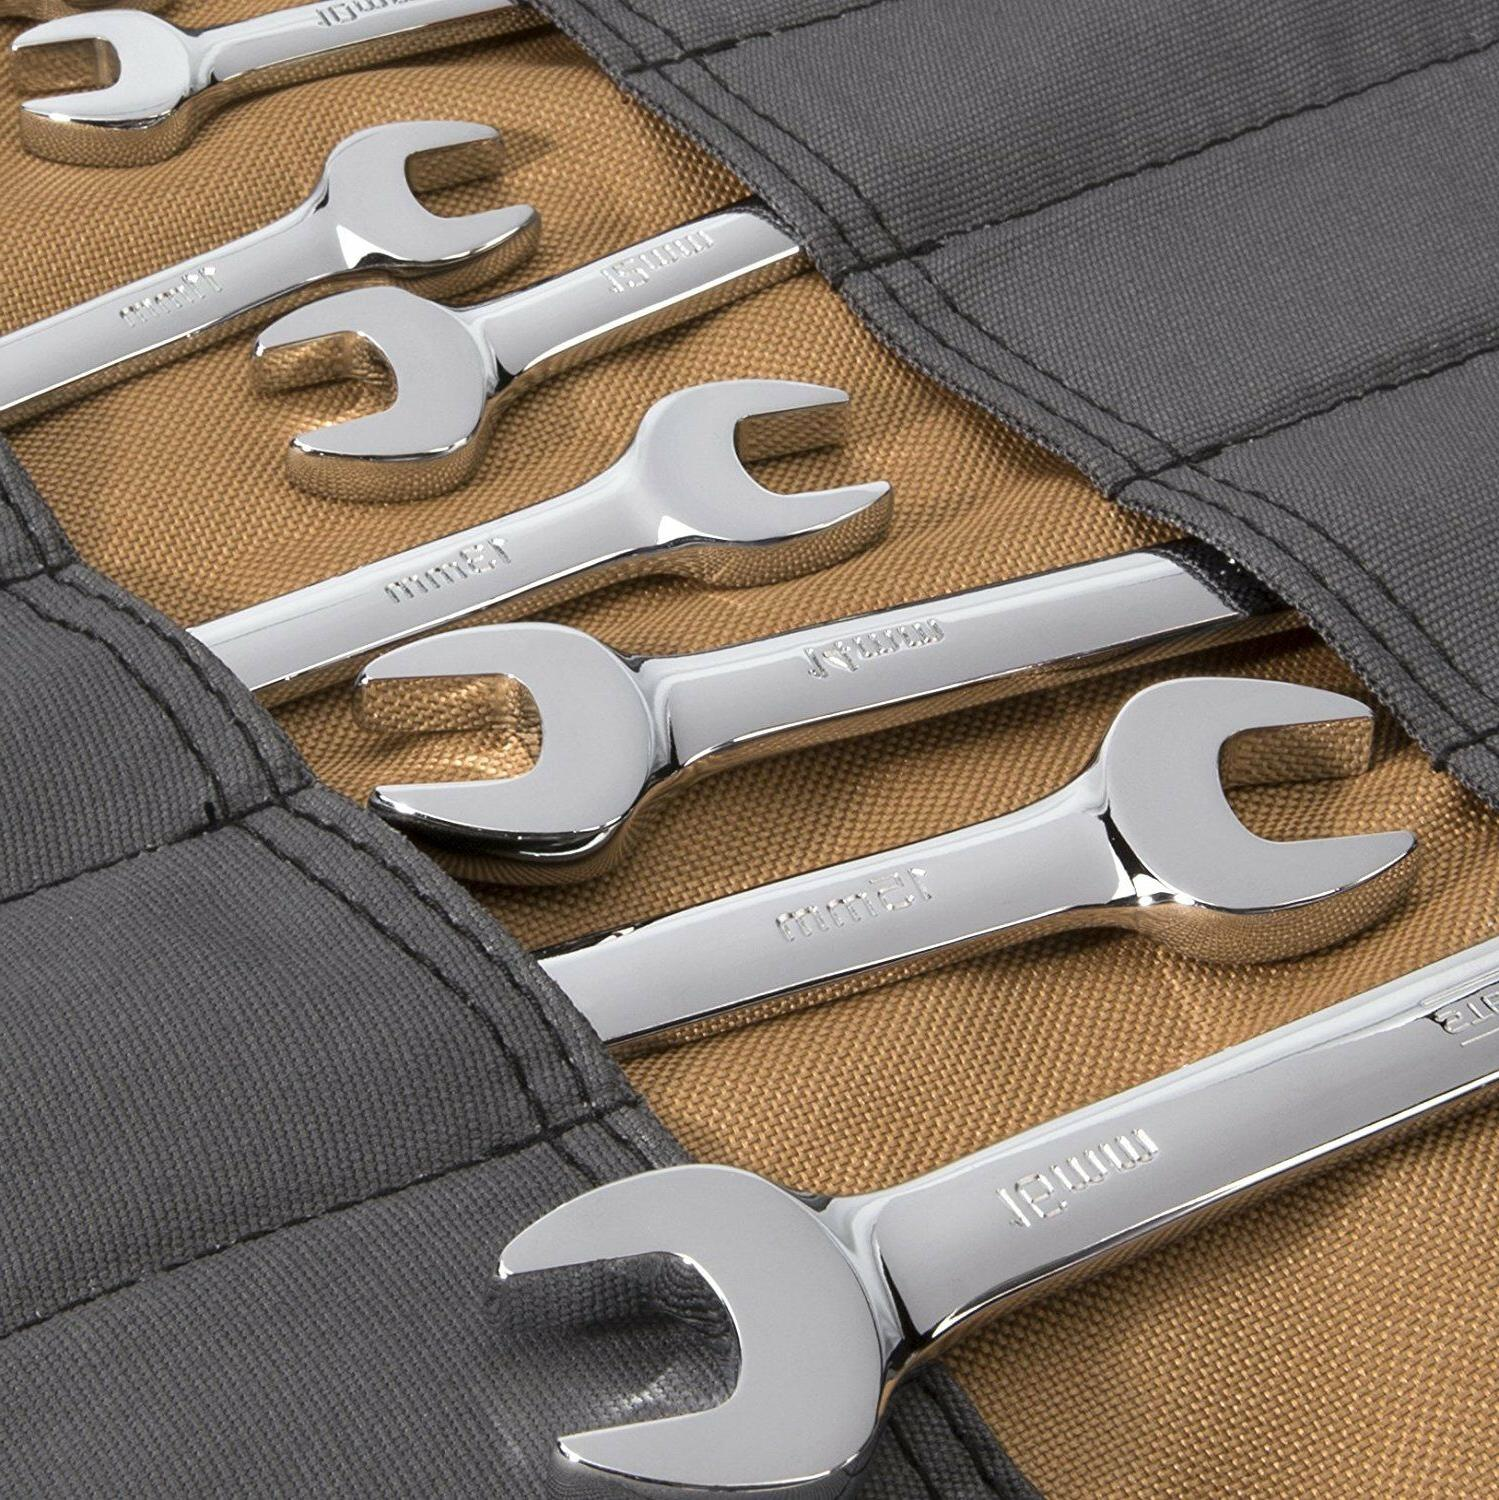 Tool roll for GearWrench 20 pc ratcheting combination wrench mo Flaps